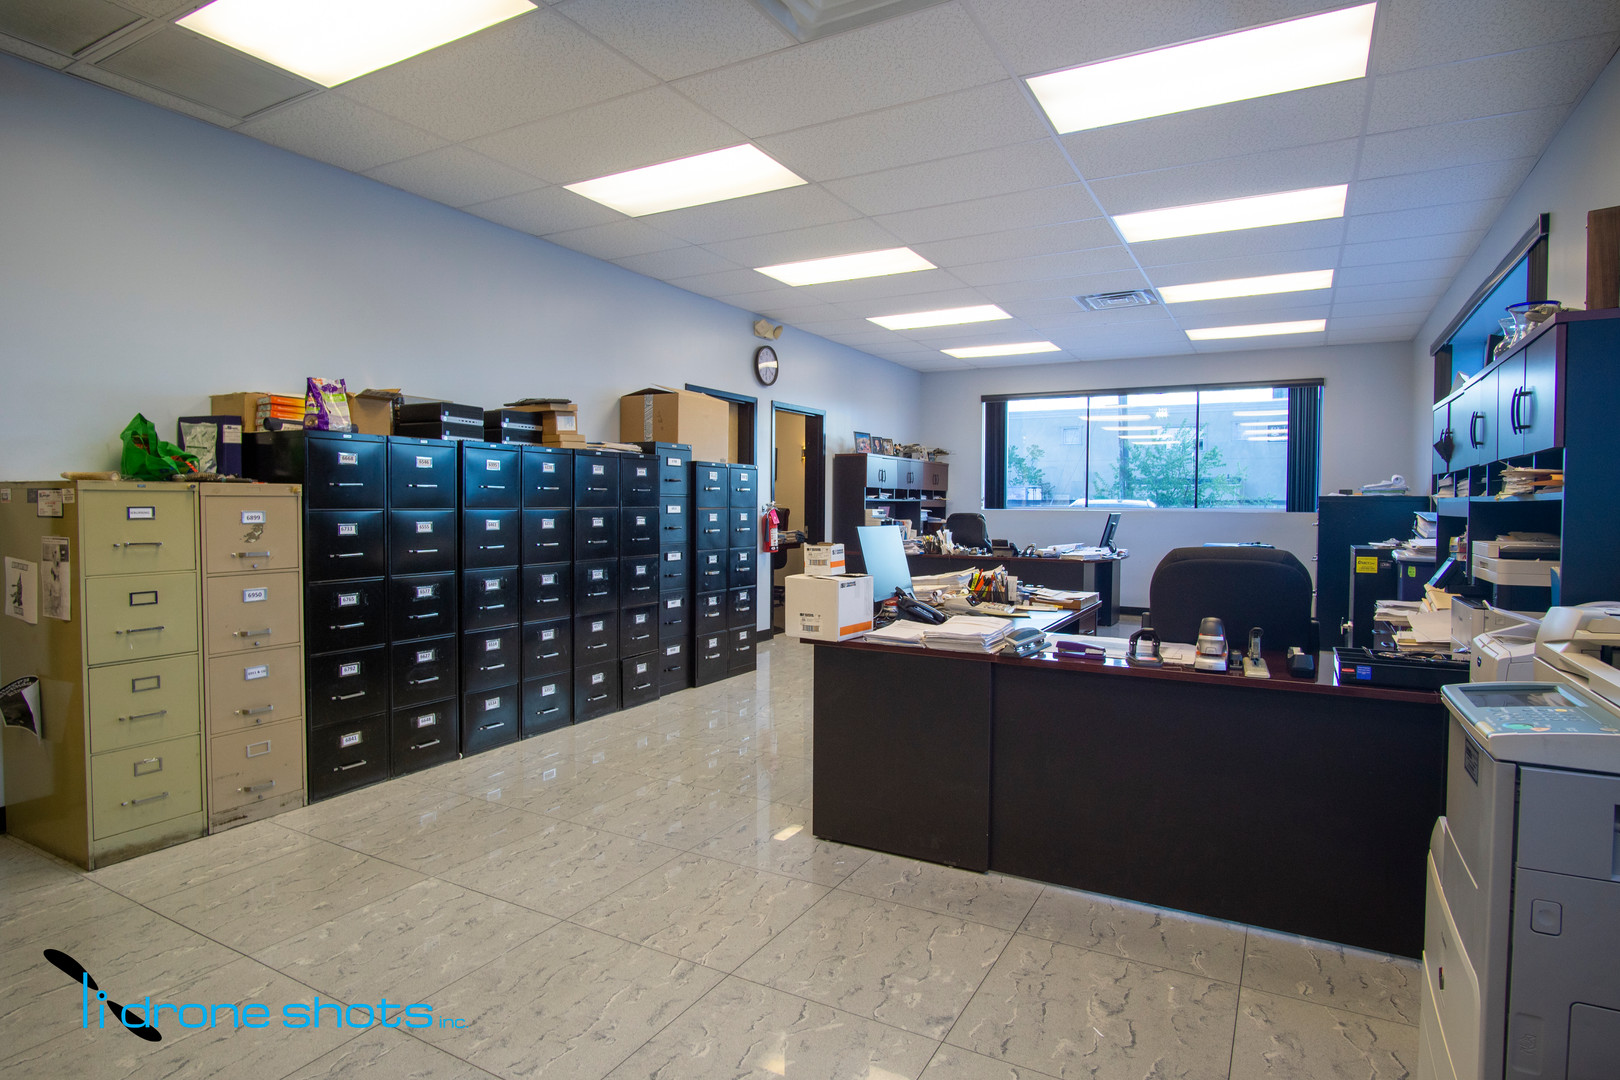 Seanair_Interior_Offices_Watermark.jpg